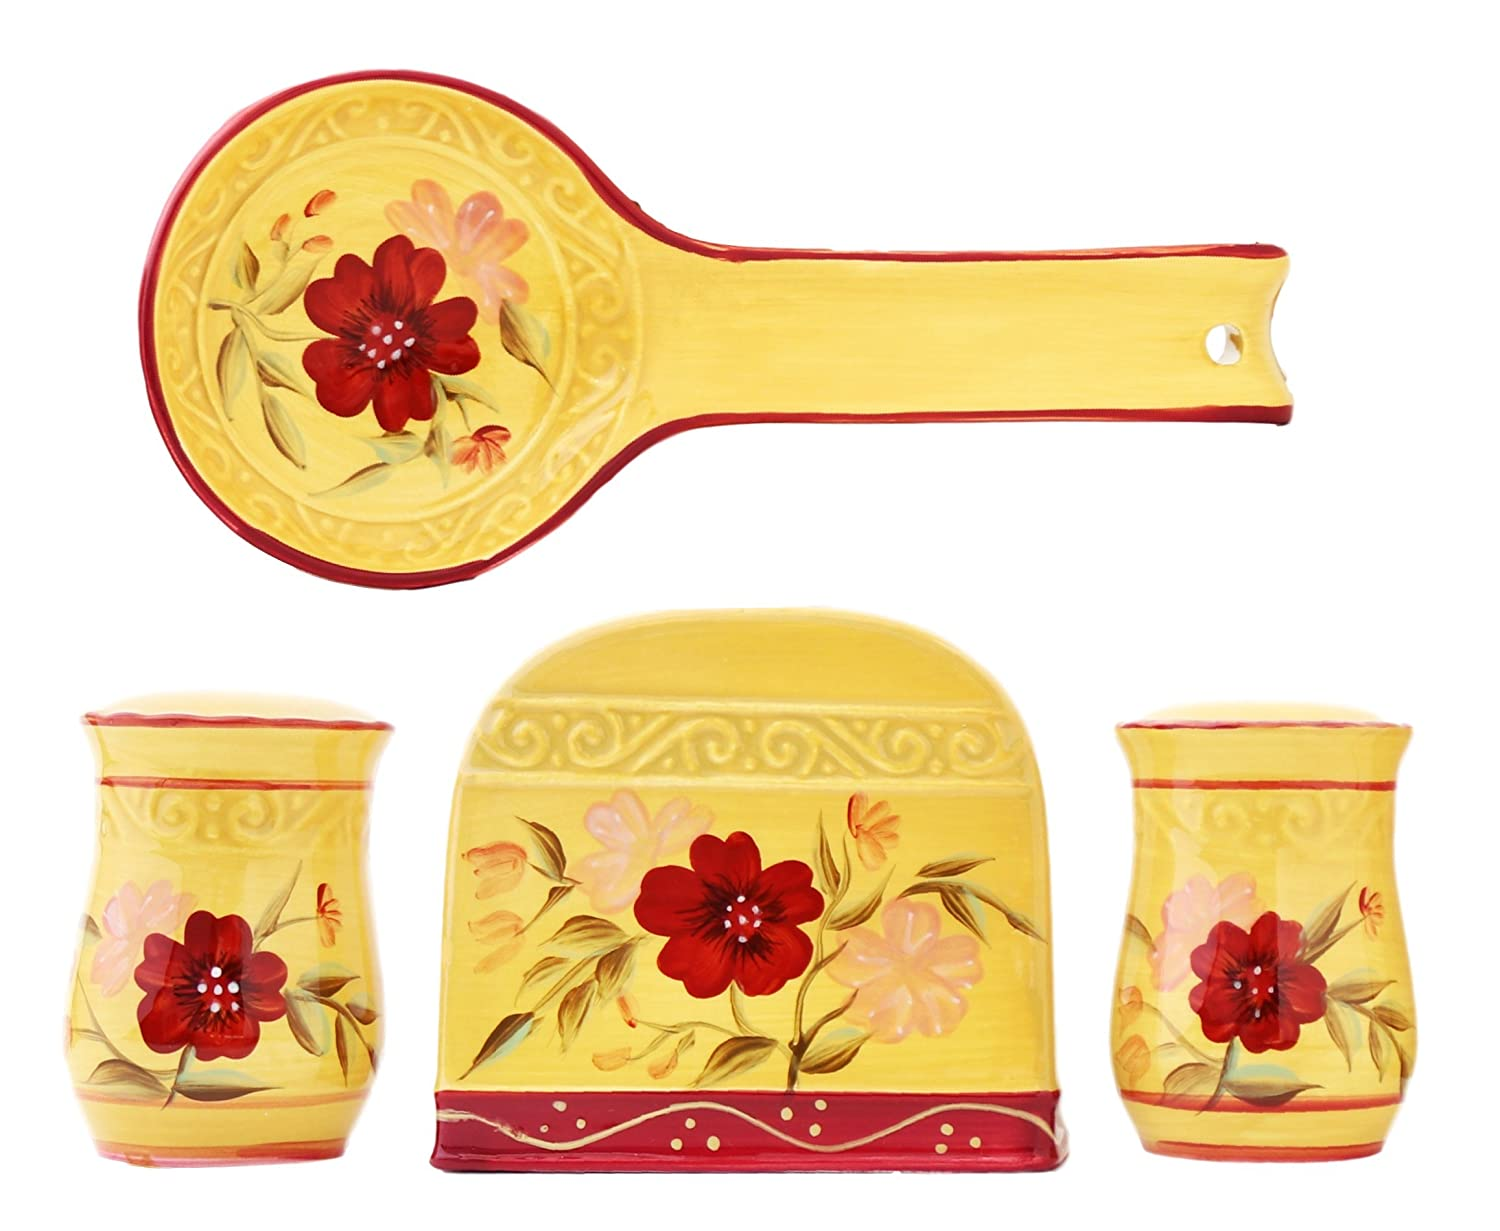 Tuscan Collection English Garden Deluxe Hand-Painted Ceramic Table Top Set, 84625/28 by ACK